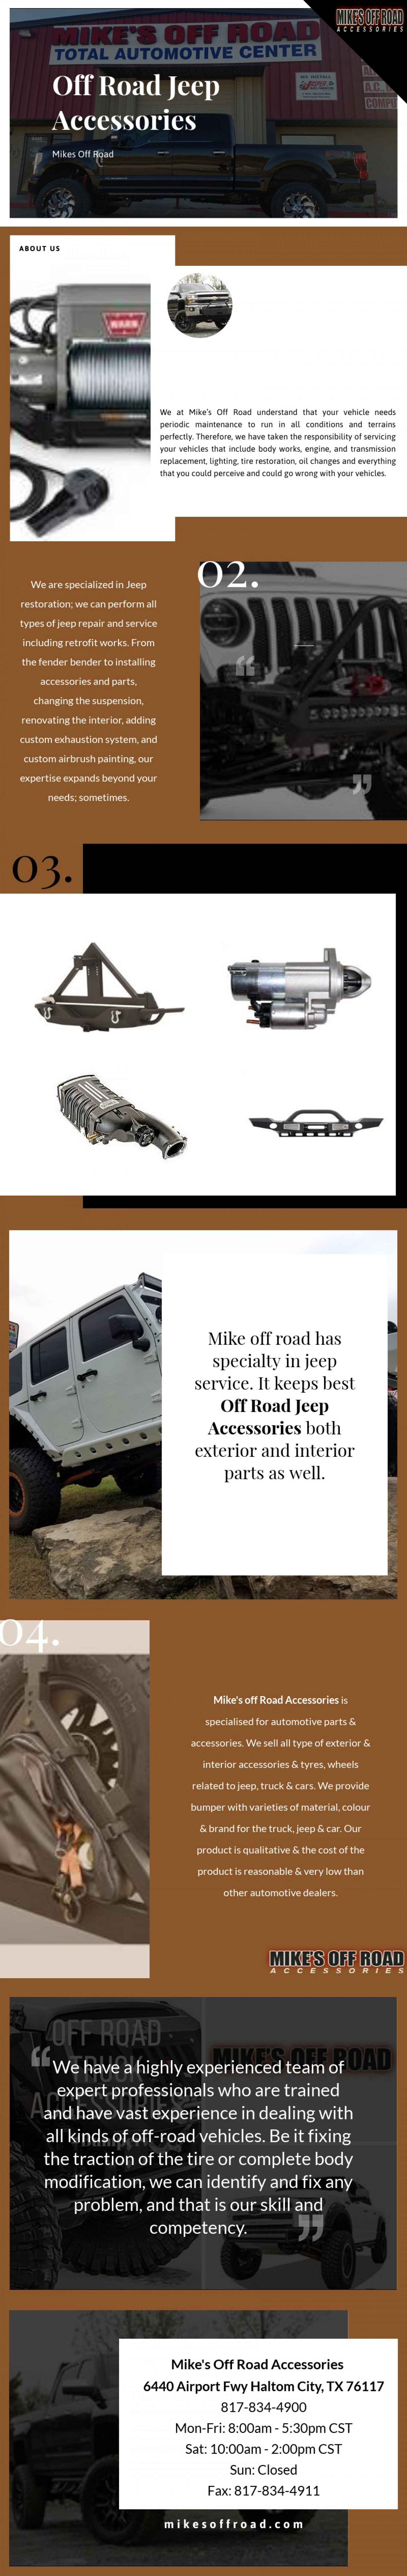 Off Road Jeep Accessories- All Types of Parts & Accessories Available Infographic